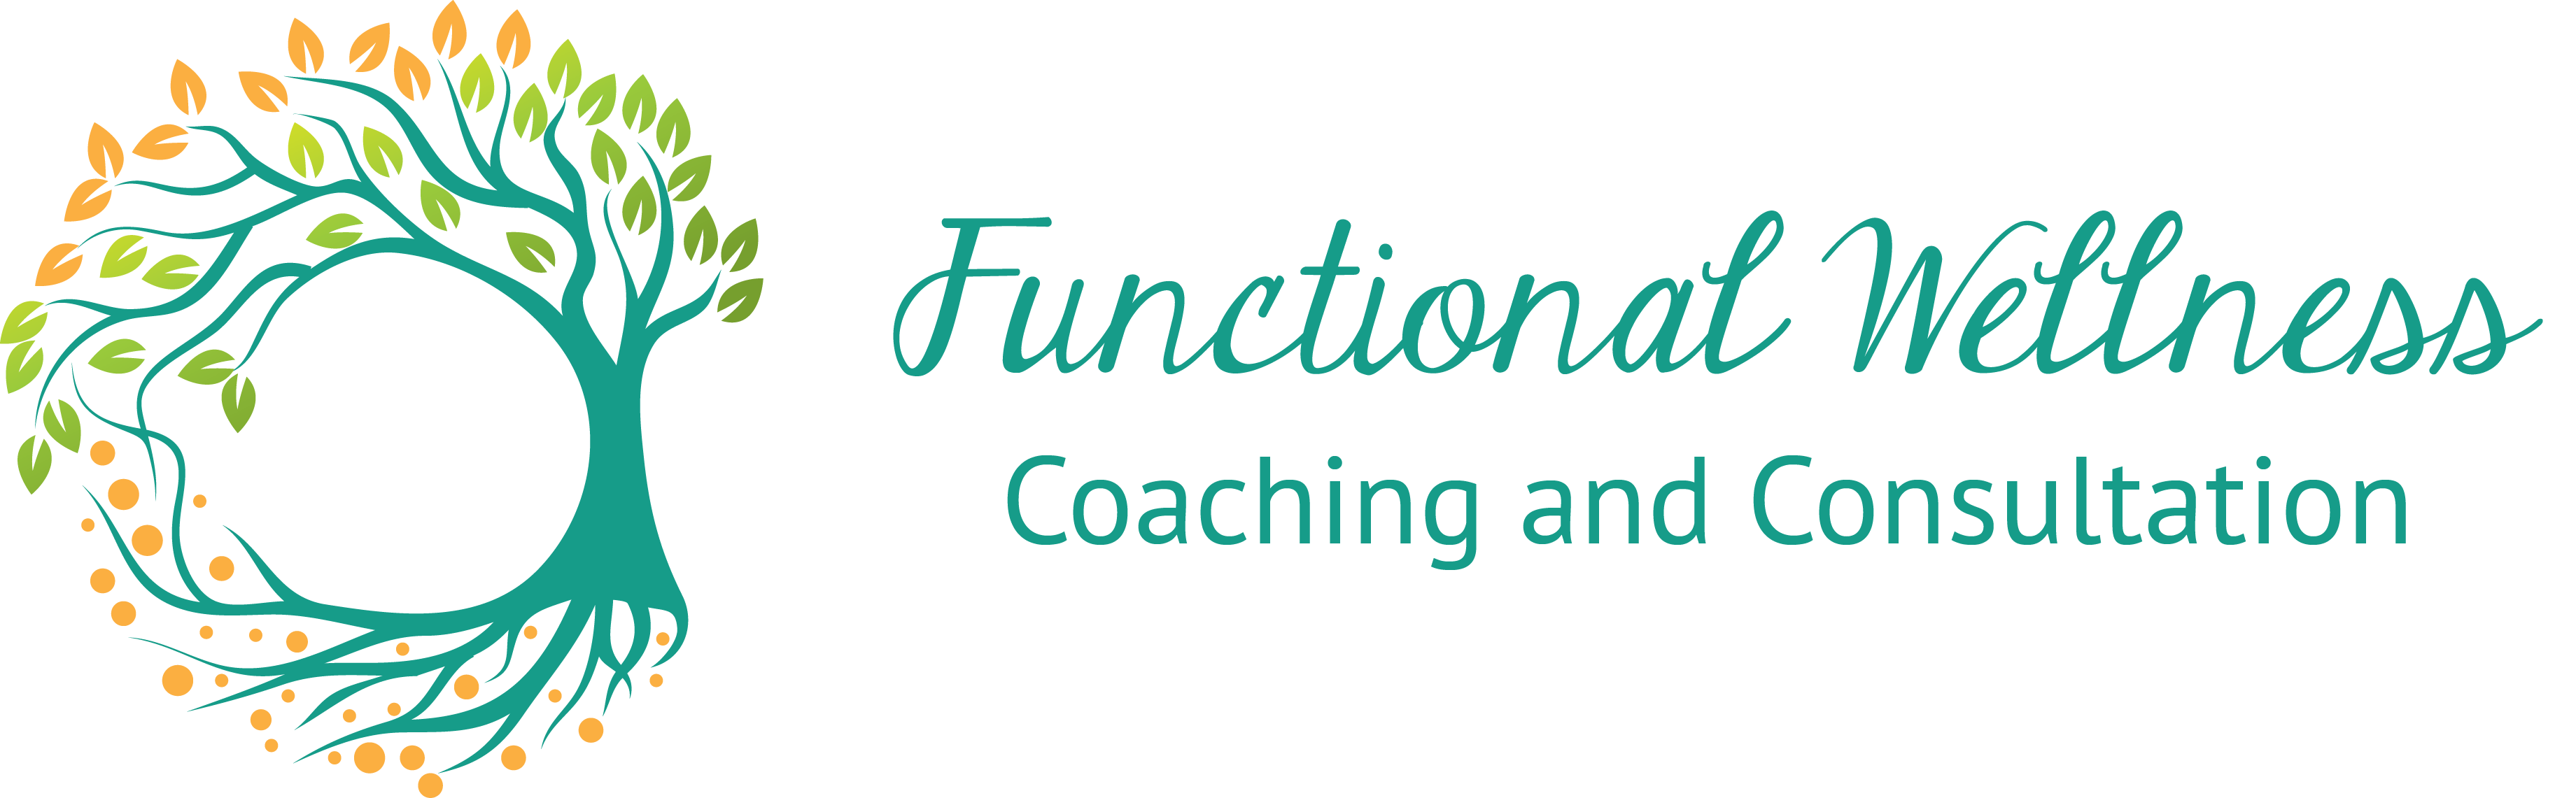 Functional Wellness Coaching and Consulting